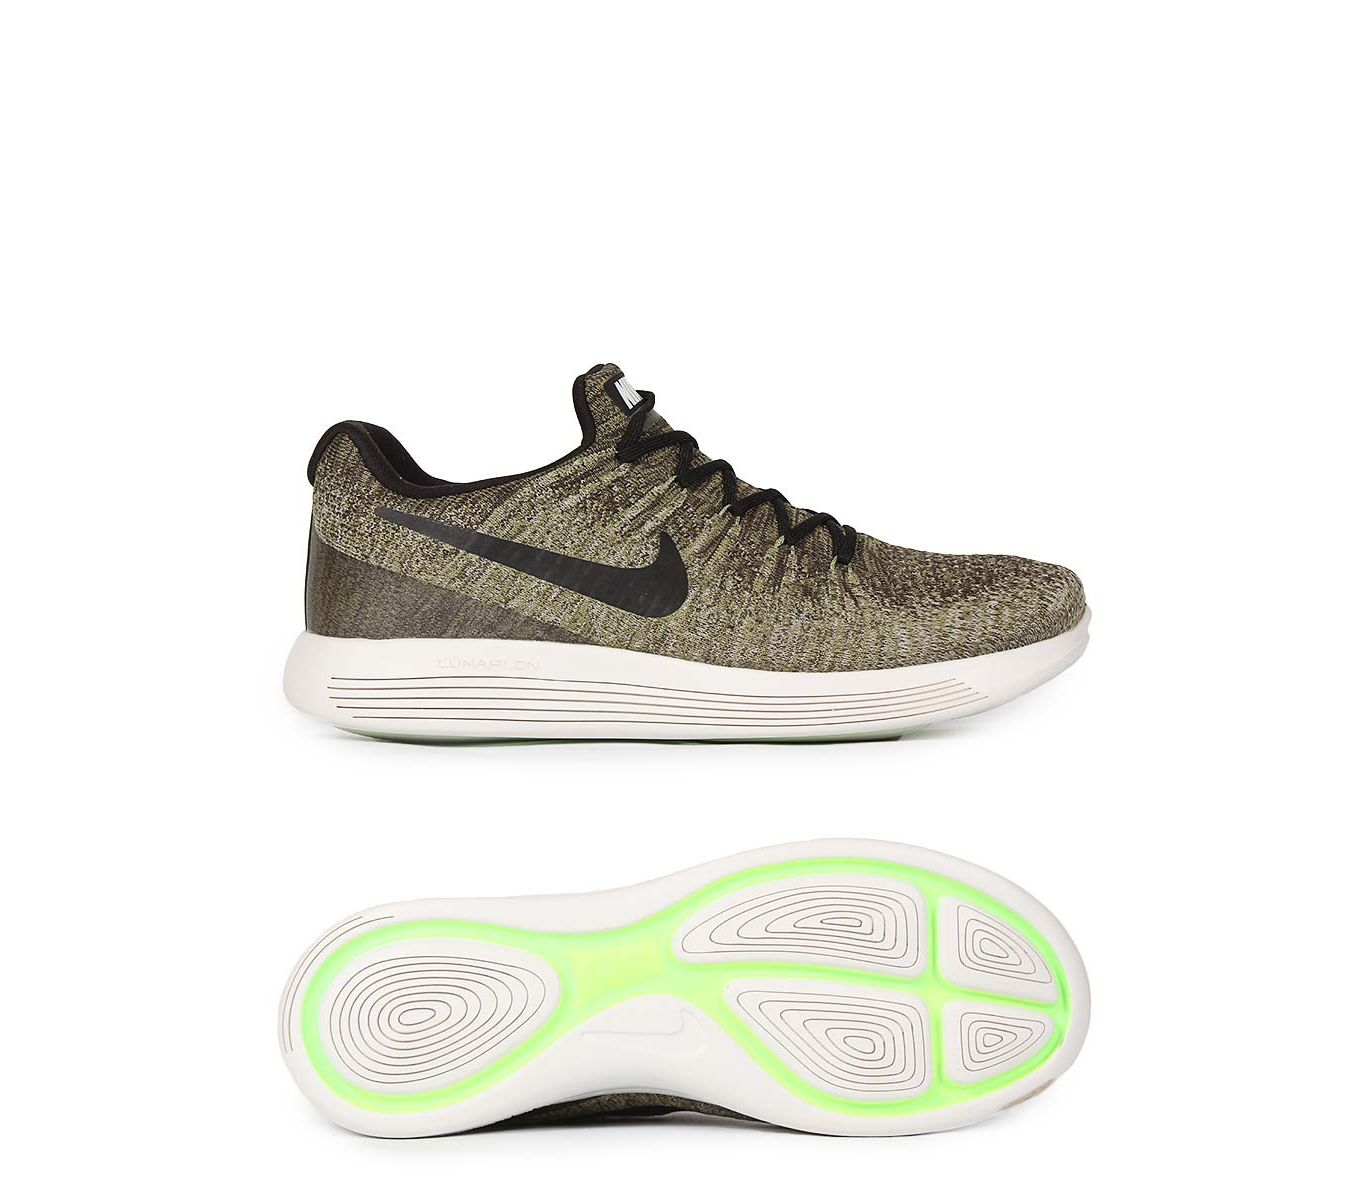 df36e7fe132c Men s Fashion    Footwear    Lifestyle   Sports Shoes    Fasilite Lunar  Epic Low Flyknit 2 - Green - Savers.pk - Everything you are looking for!